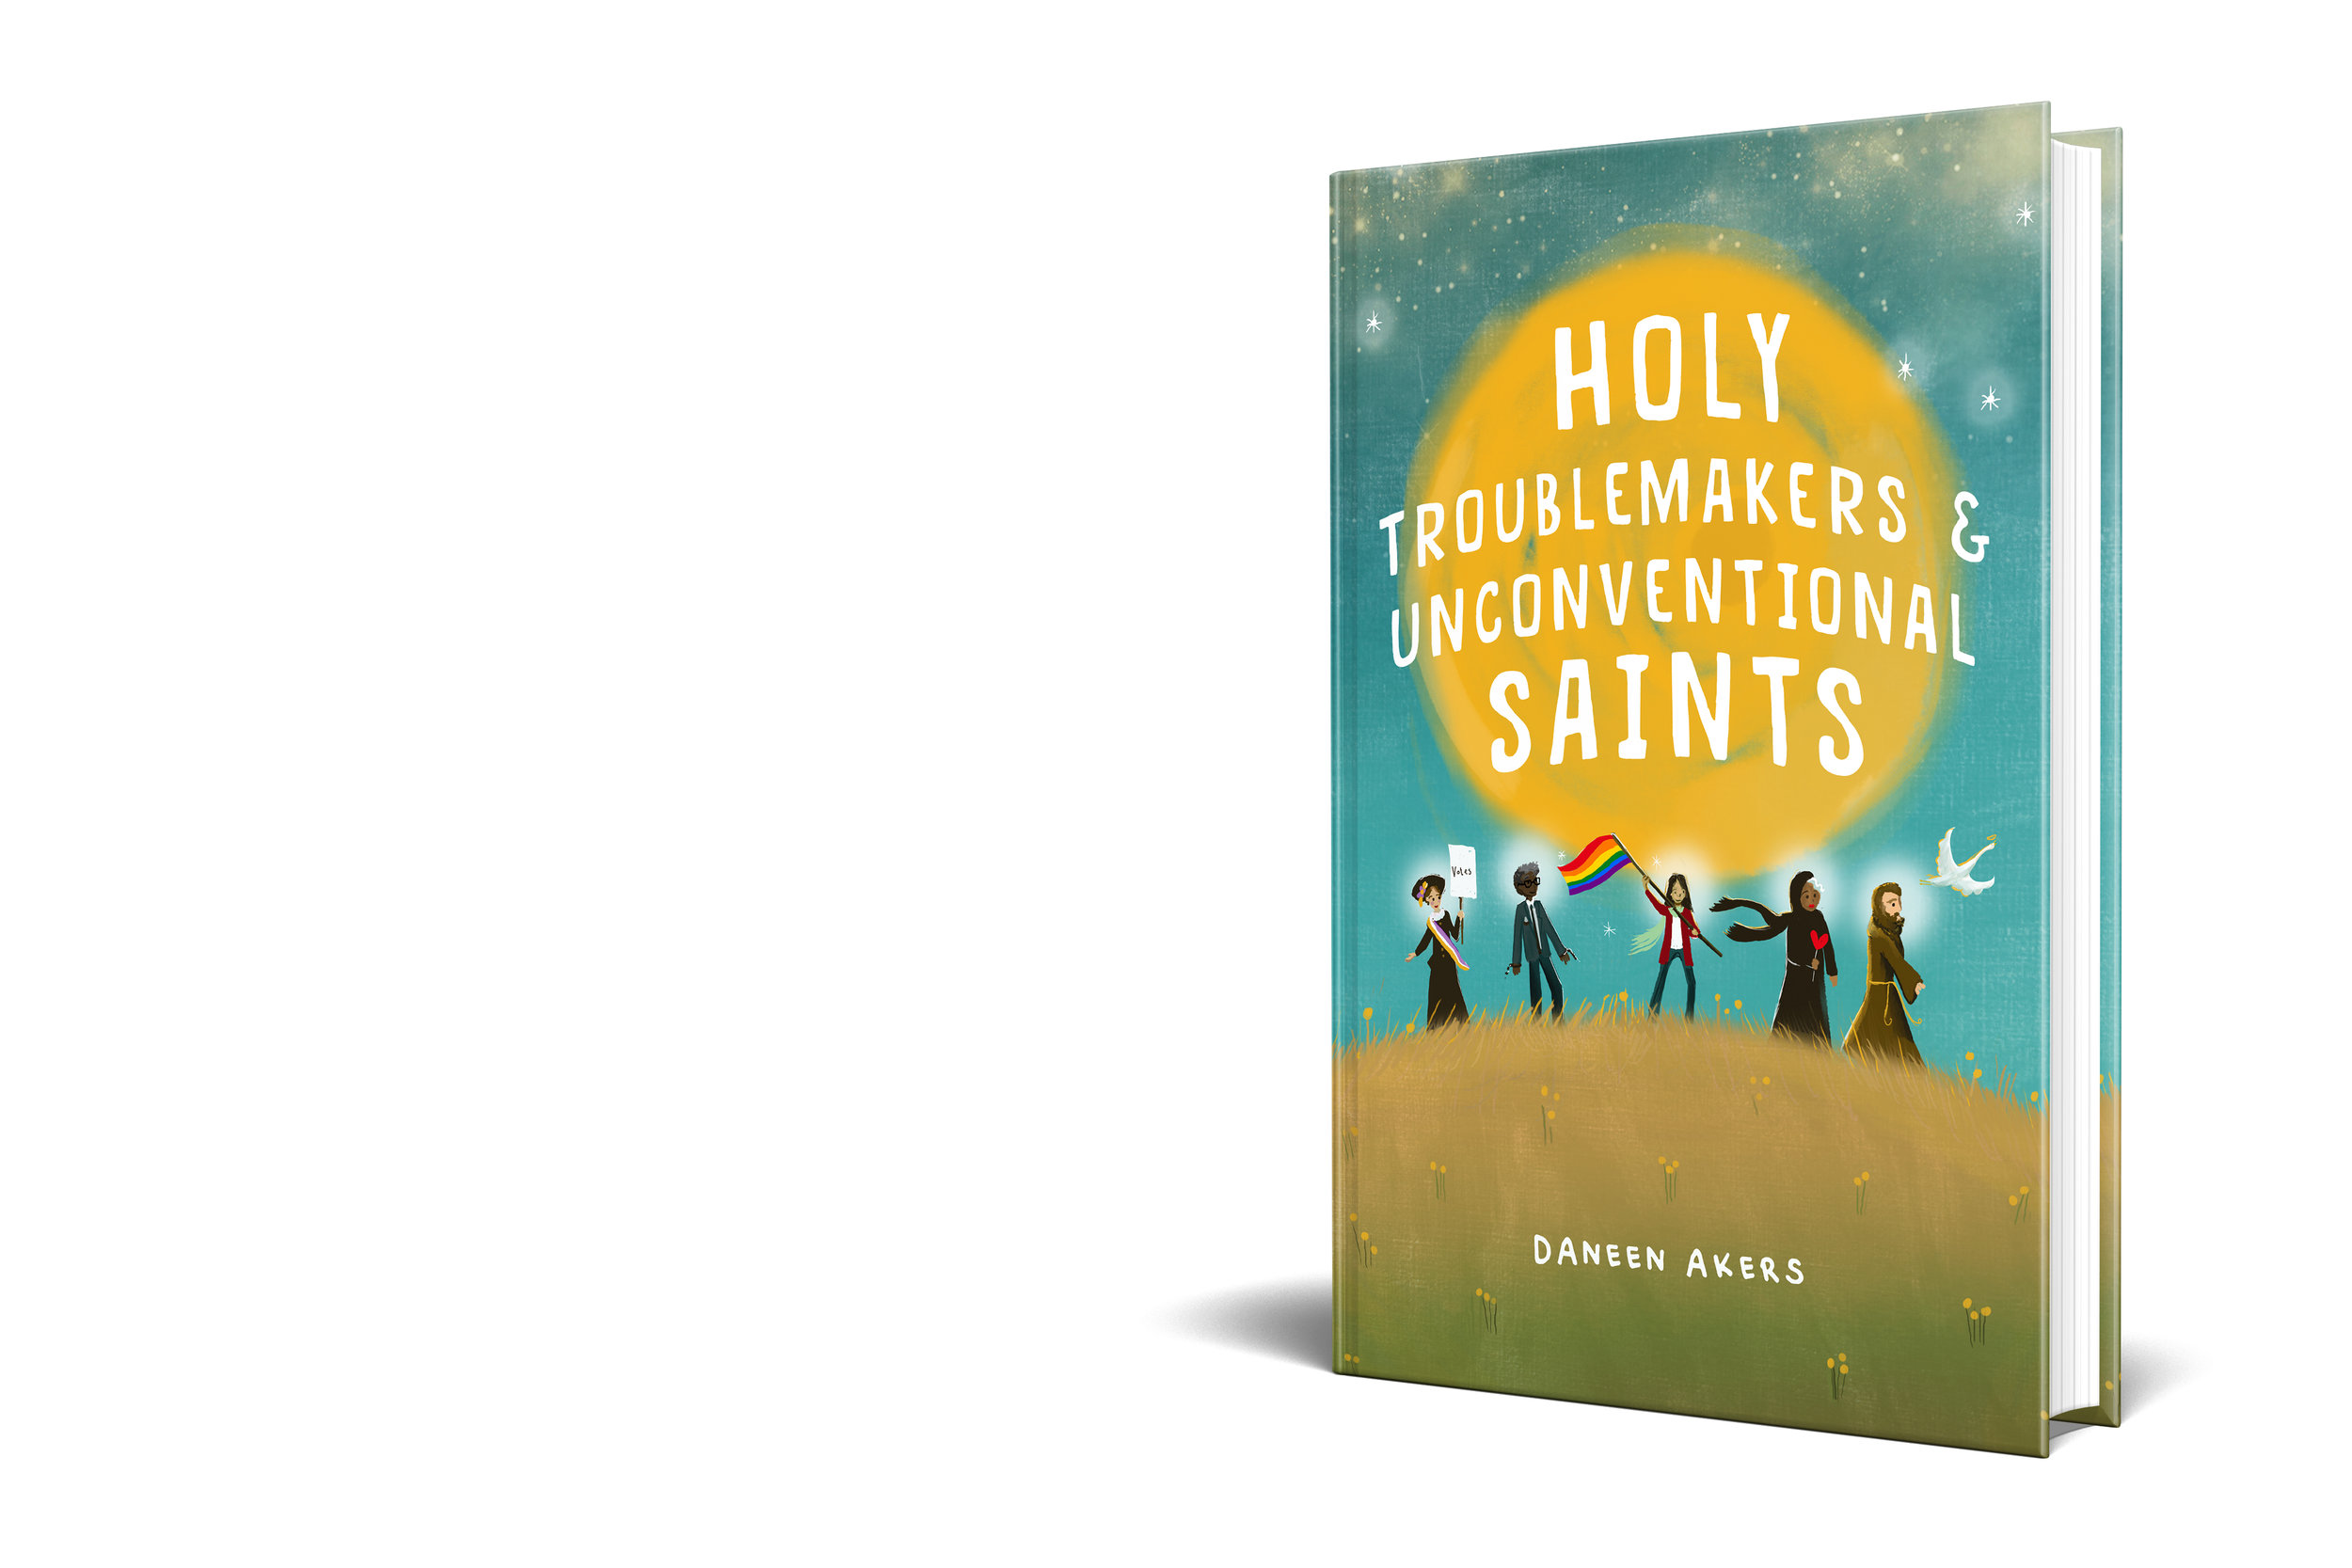 Holy Troublemakers & Unconventional Saints - Cover Mockup 3